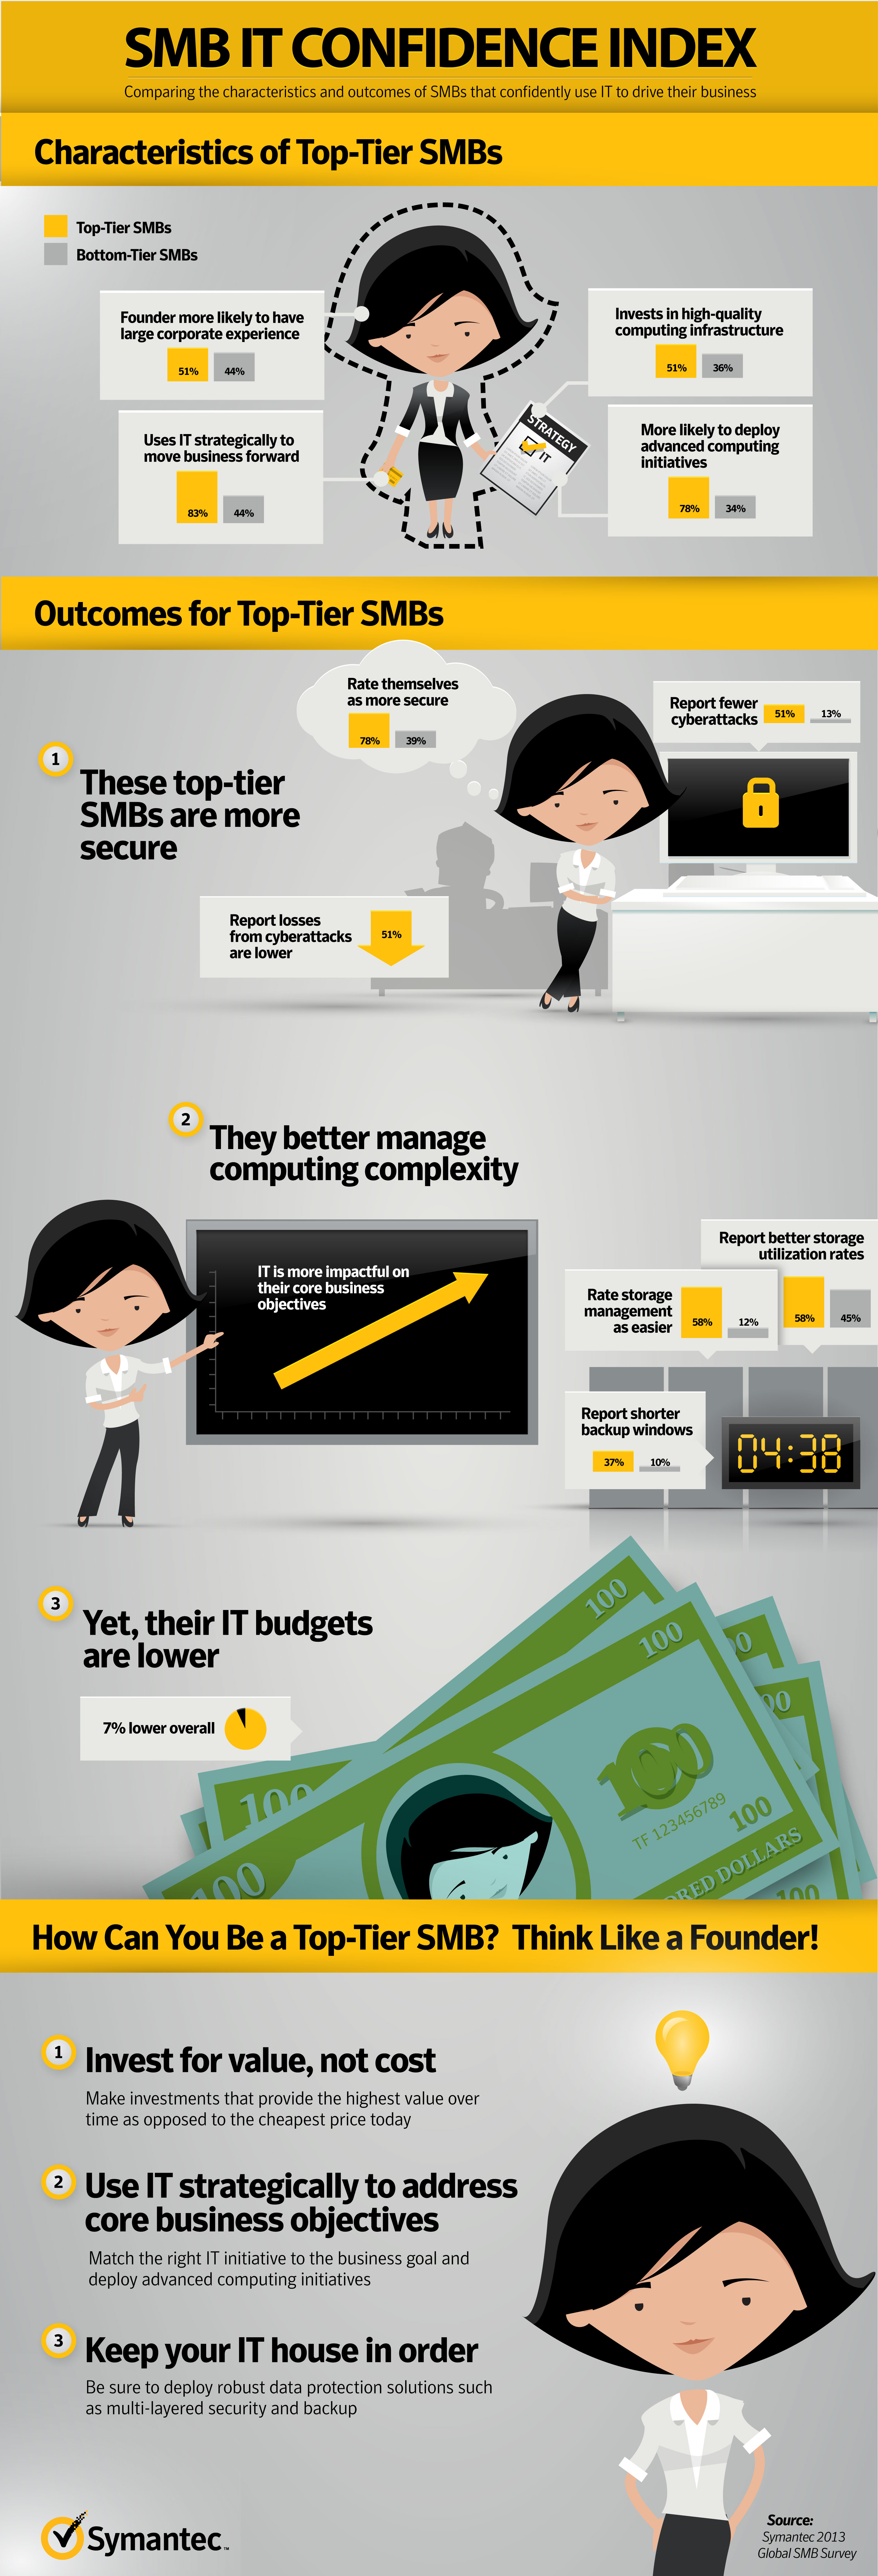 Symantec smb it confidence proves execution of it initiatives symantec 2013 smb survey infographic 1betcityfo Images